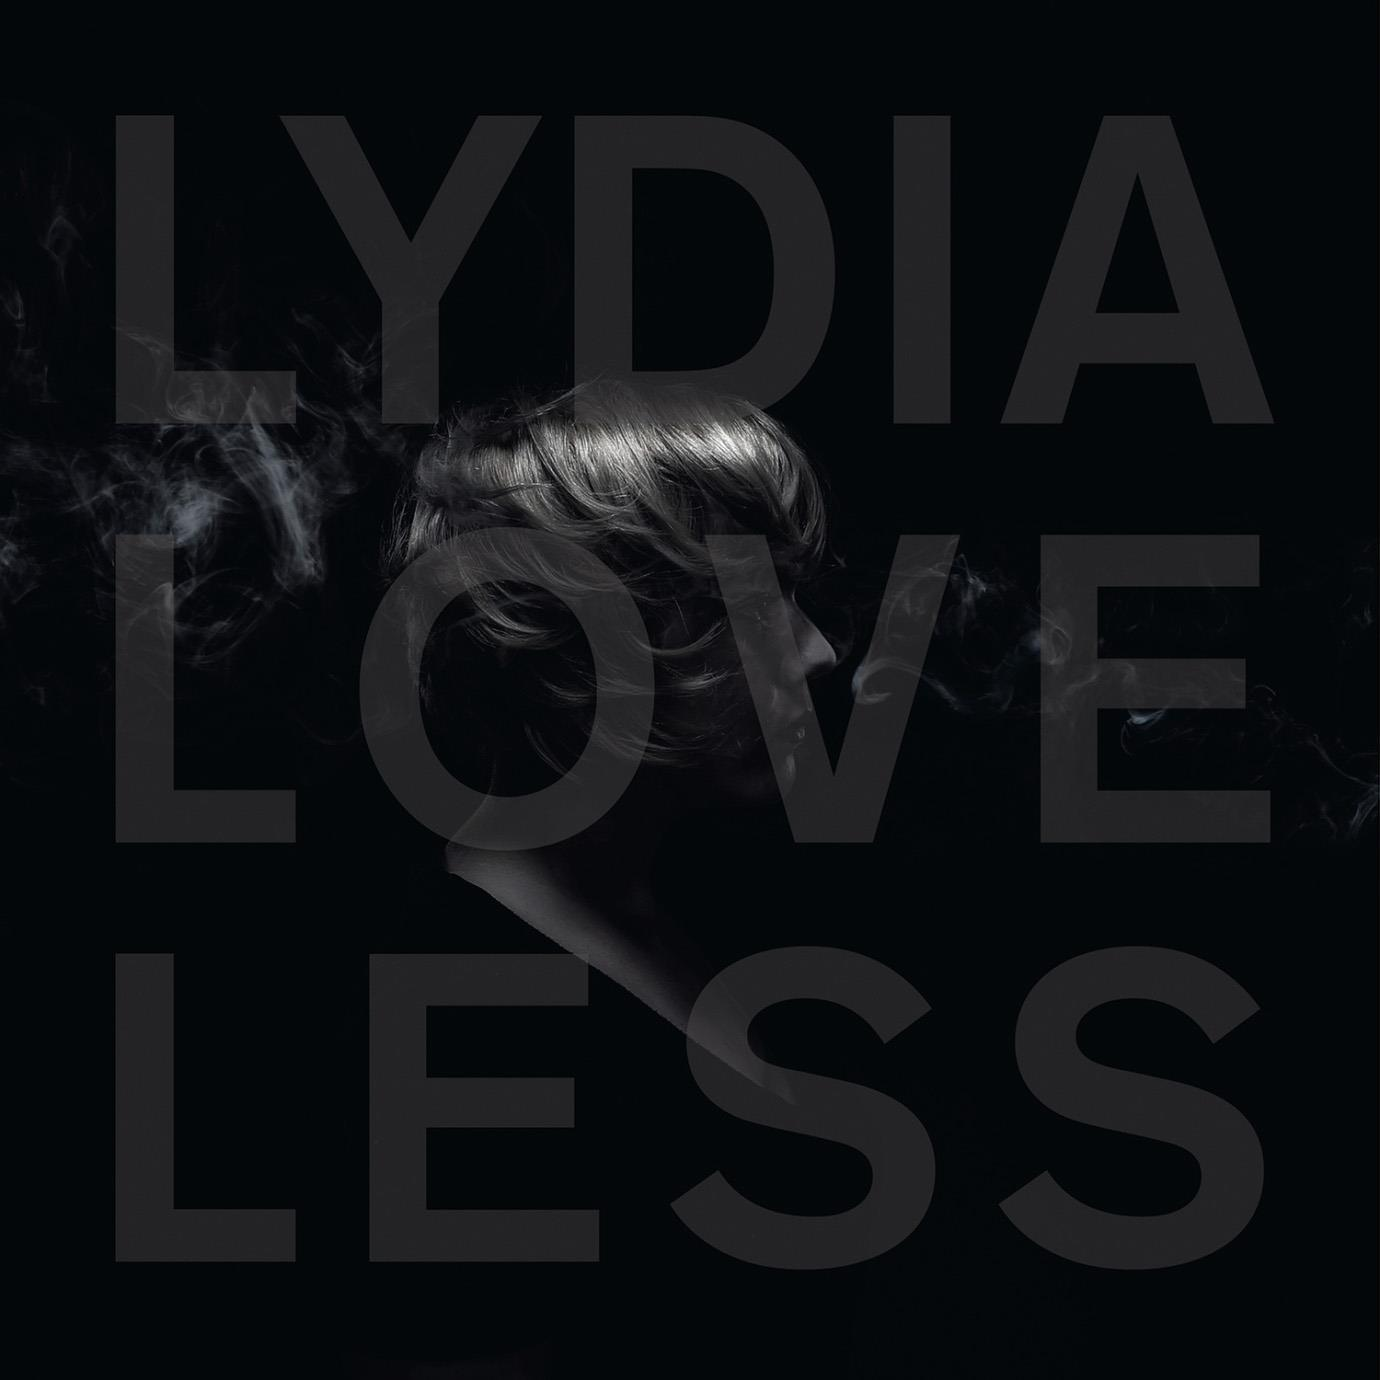 BSLP219 Bloodshot  Lydia Loveless Somewhere Else (LP)